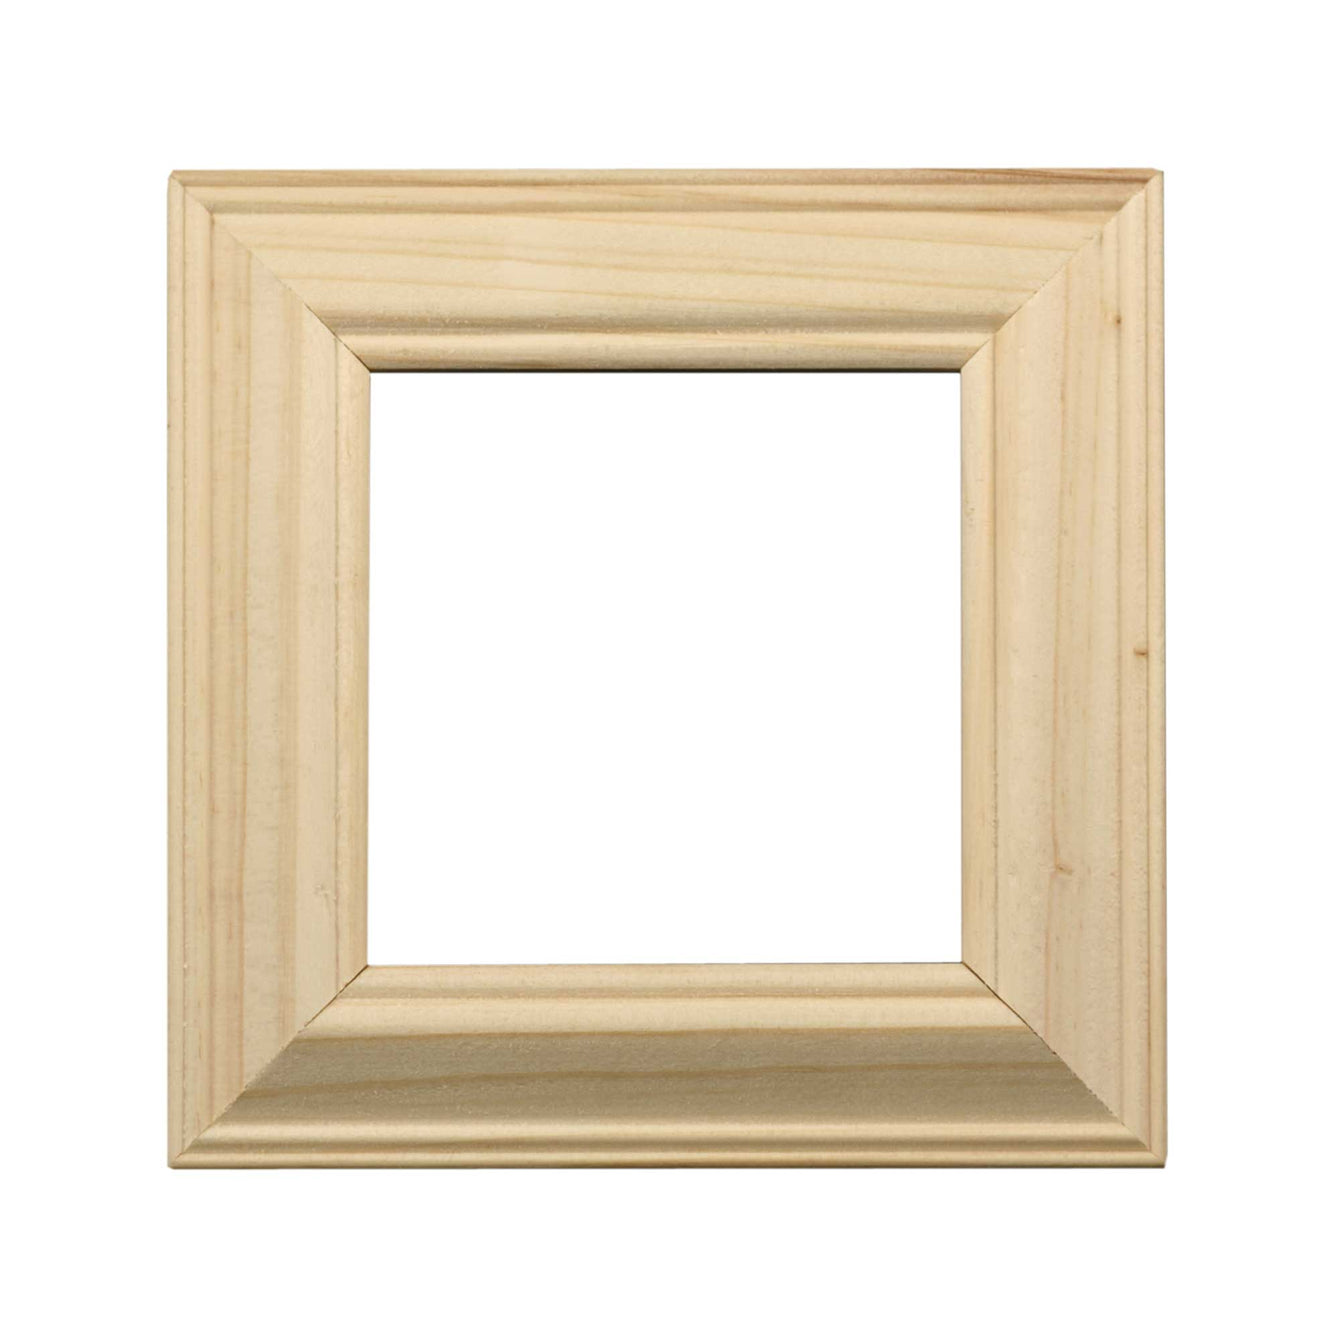 ElekTek Switch Surround Ovolo Frame Cover Finger Plate Pine Shades Old Varnished Pine